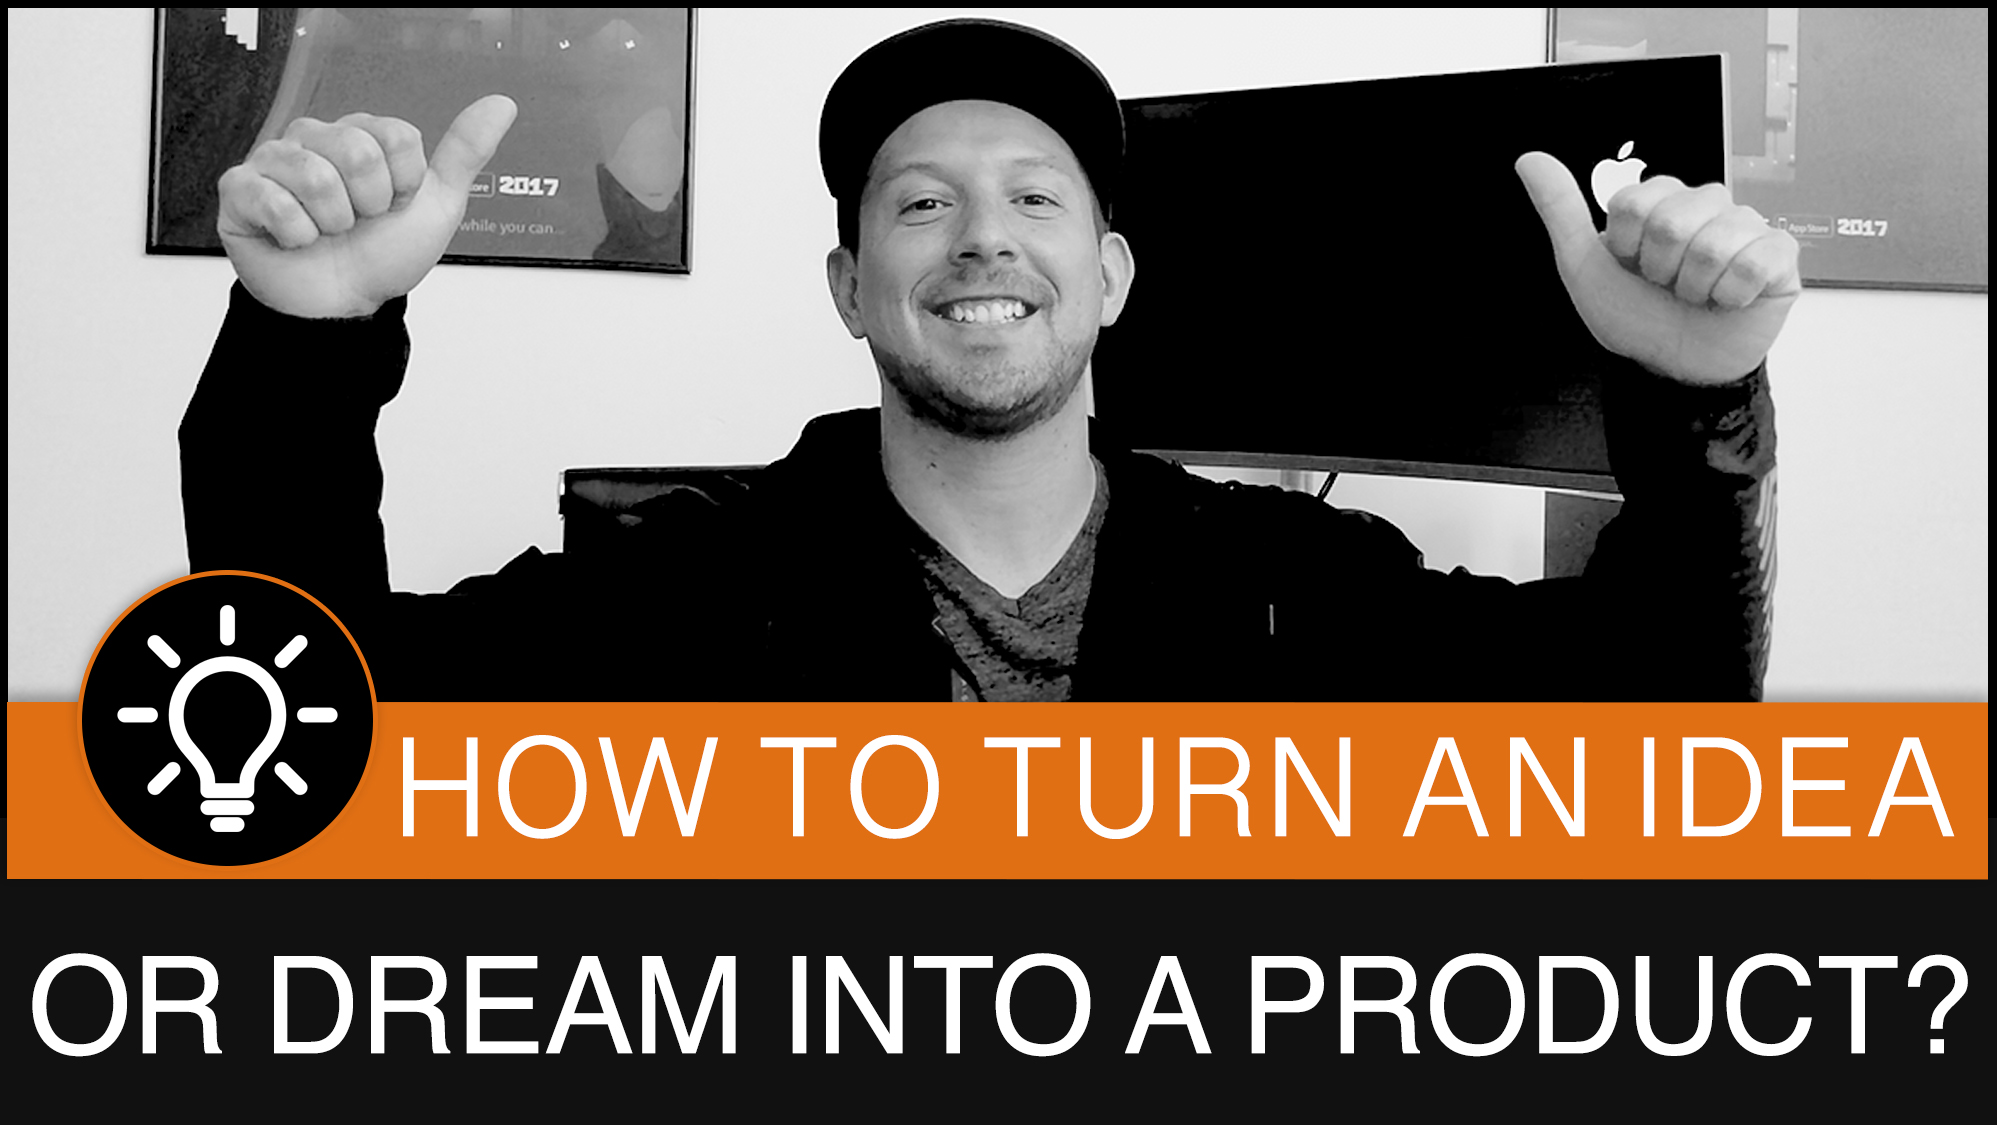 How to turn an idea or dream into a product?